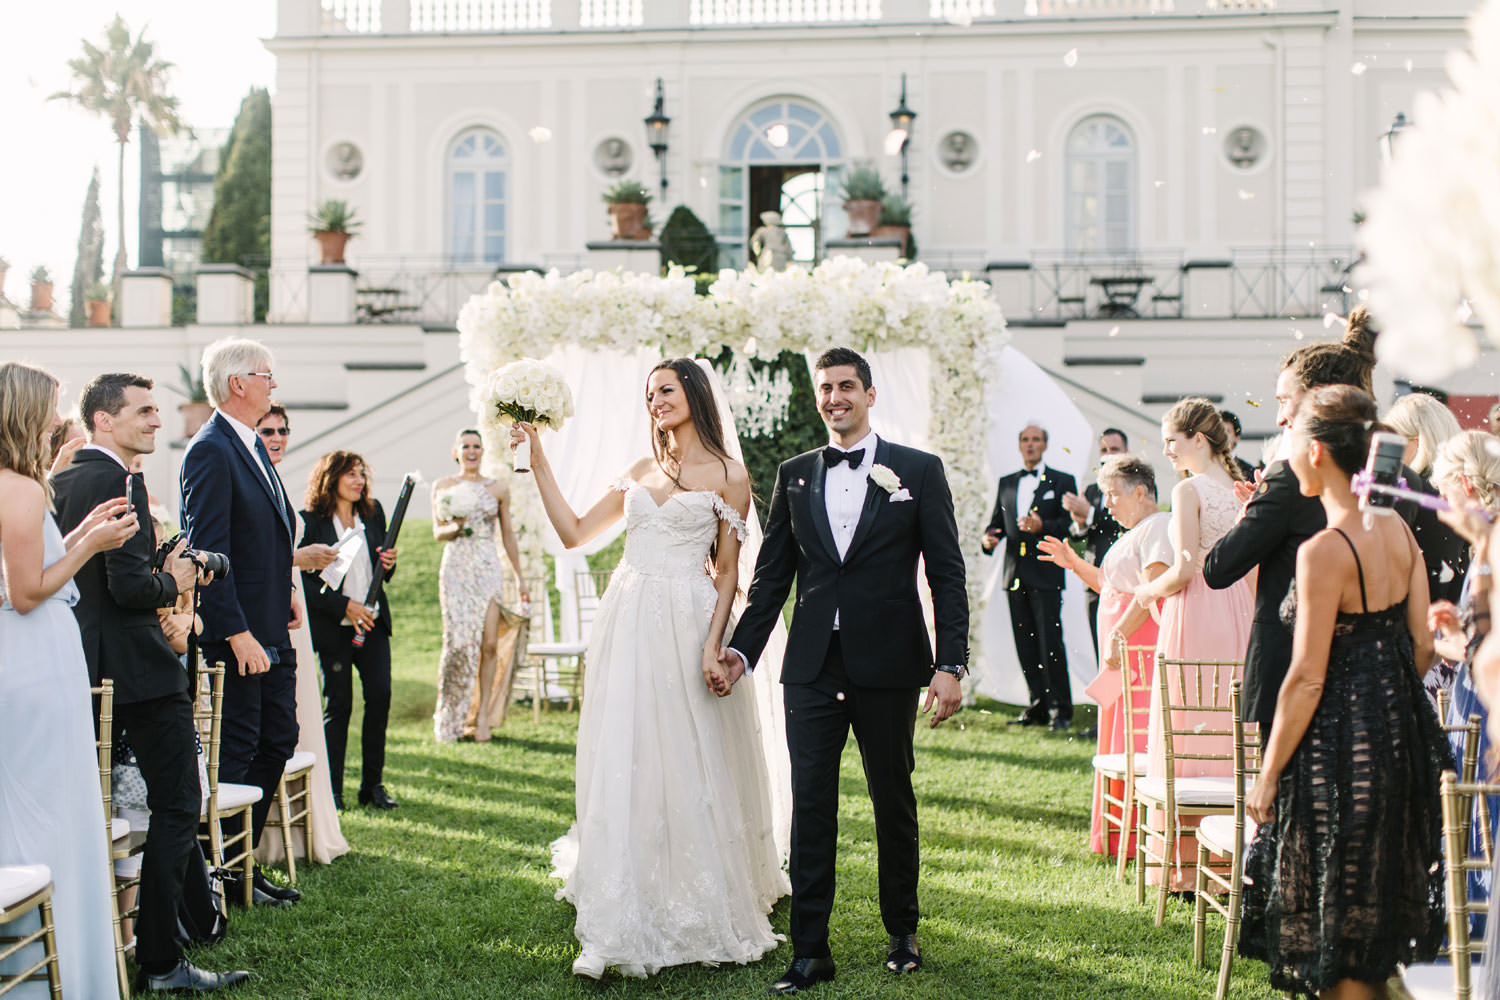 019-villa-miani-rome-wedding.jpg